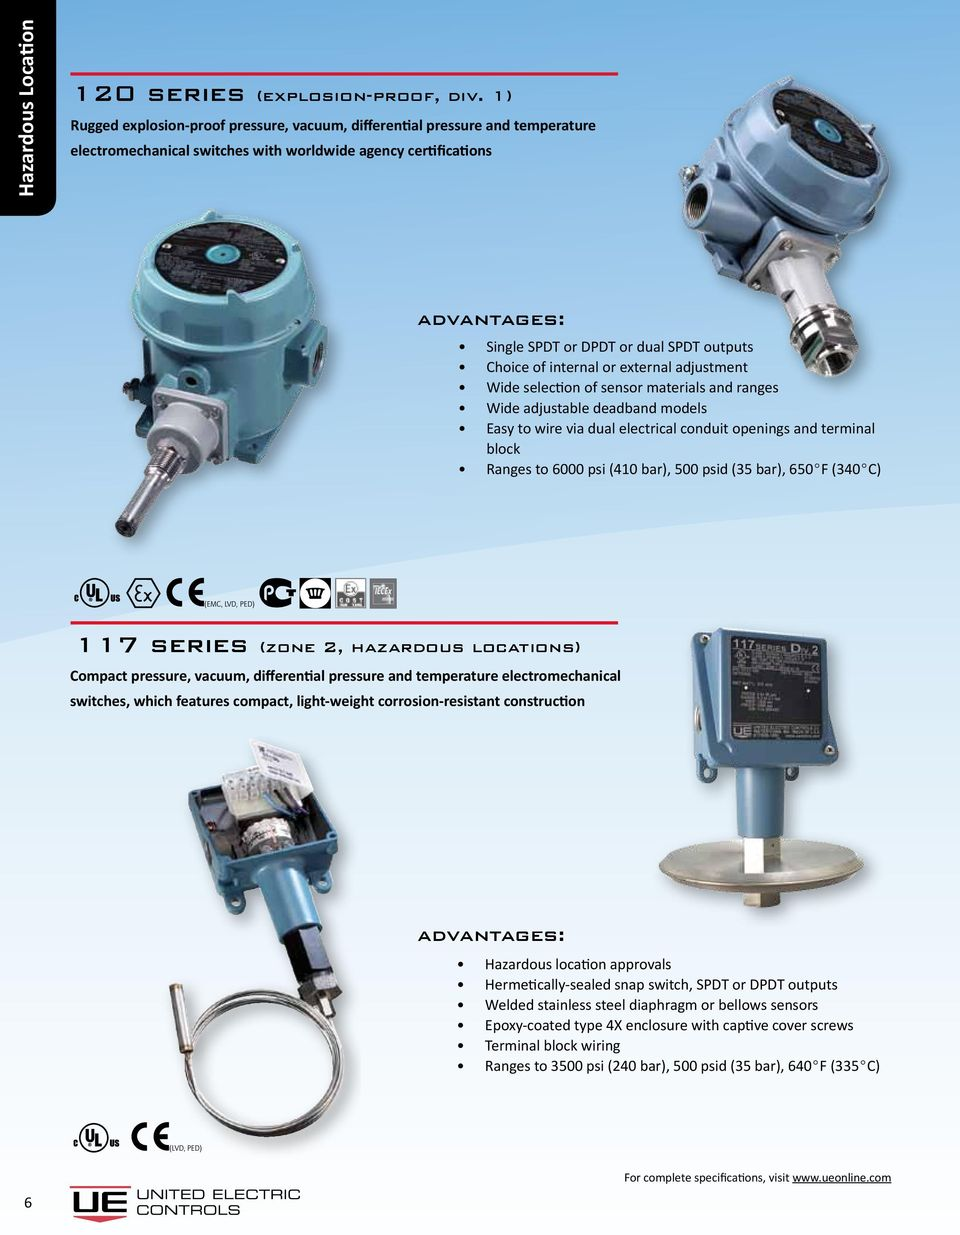 internal or external adjustment Wide selection of sensor materials and ranges Wide adjustable deadband models Easy to wire via dual electrical conduit openings and terminal block Ranges to 6000 psi